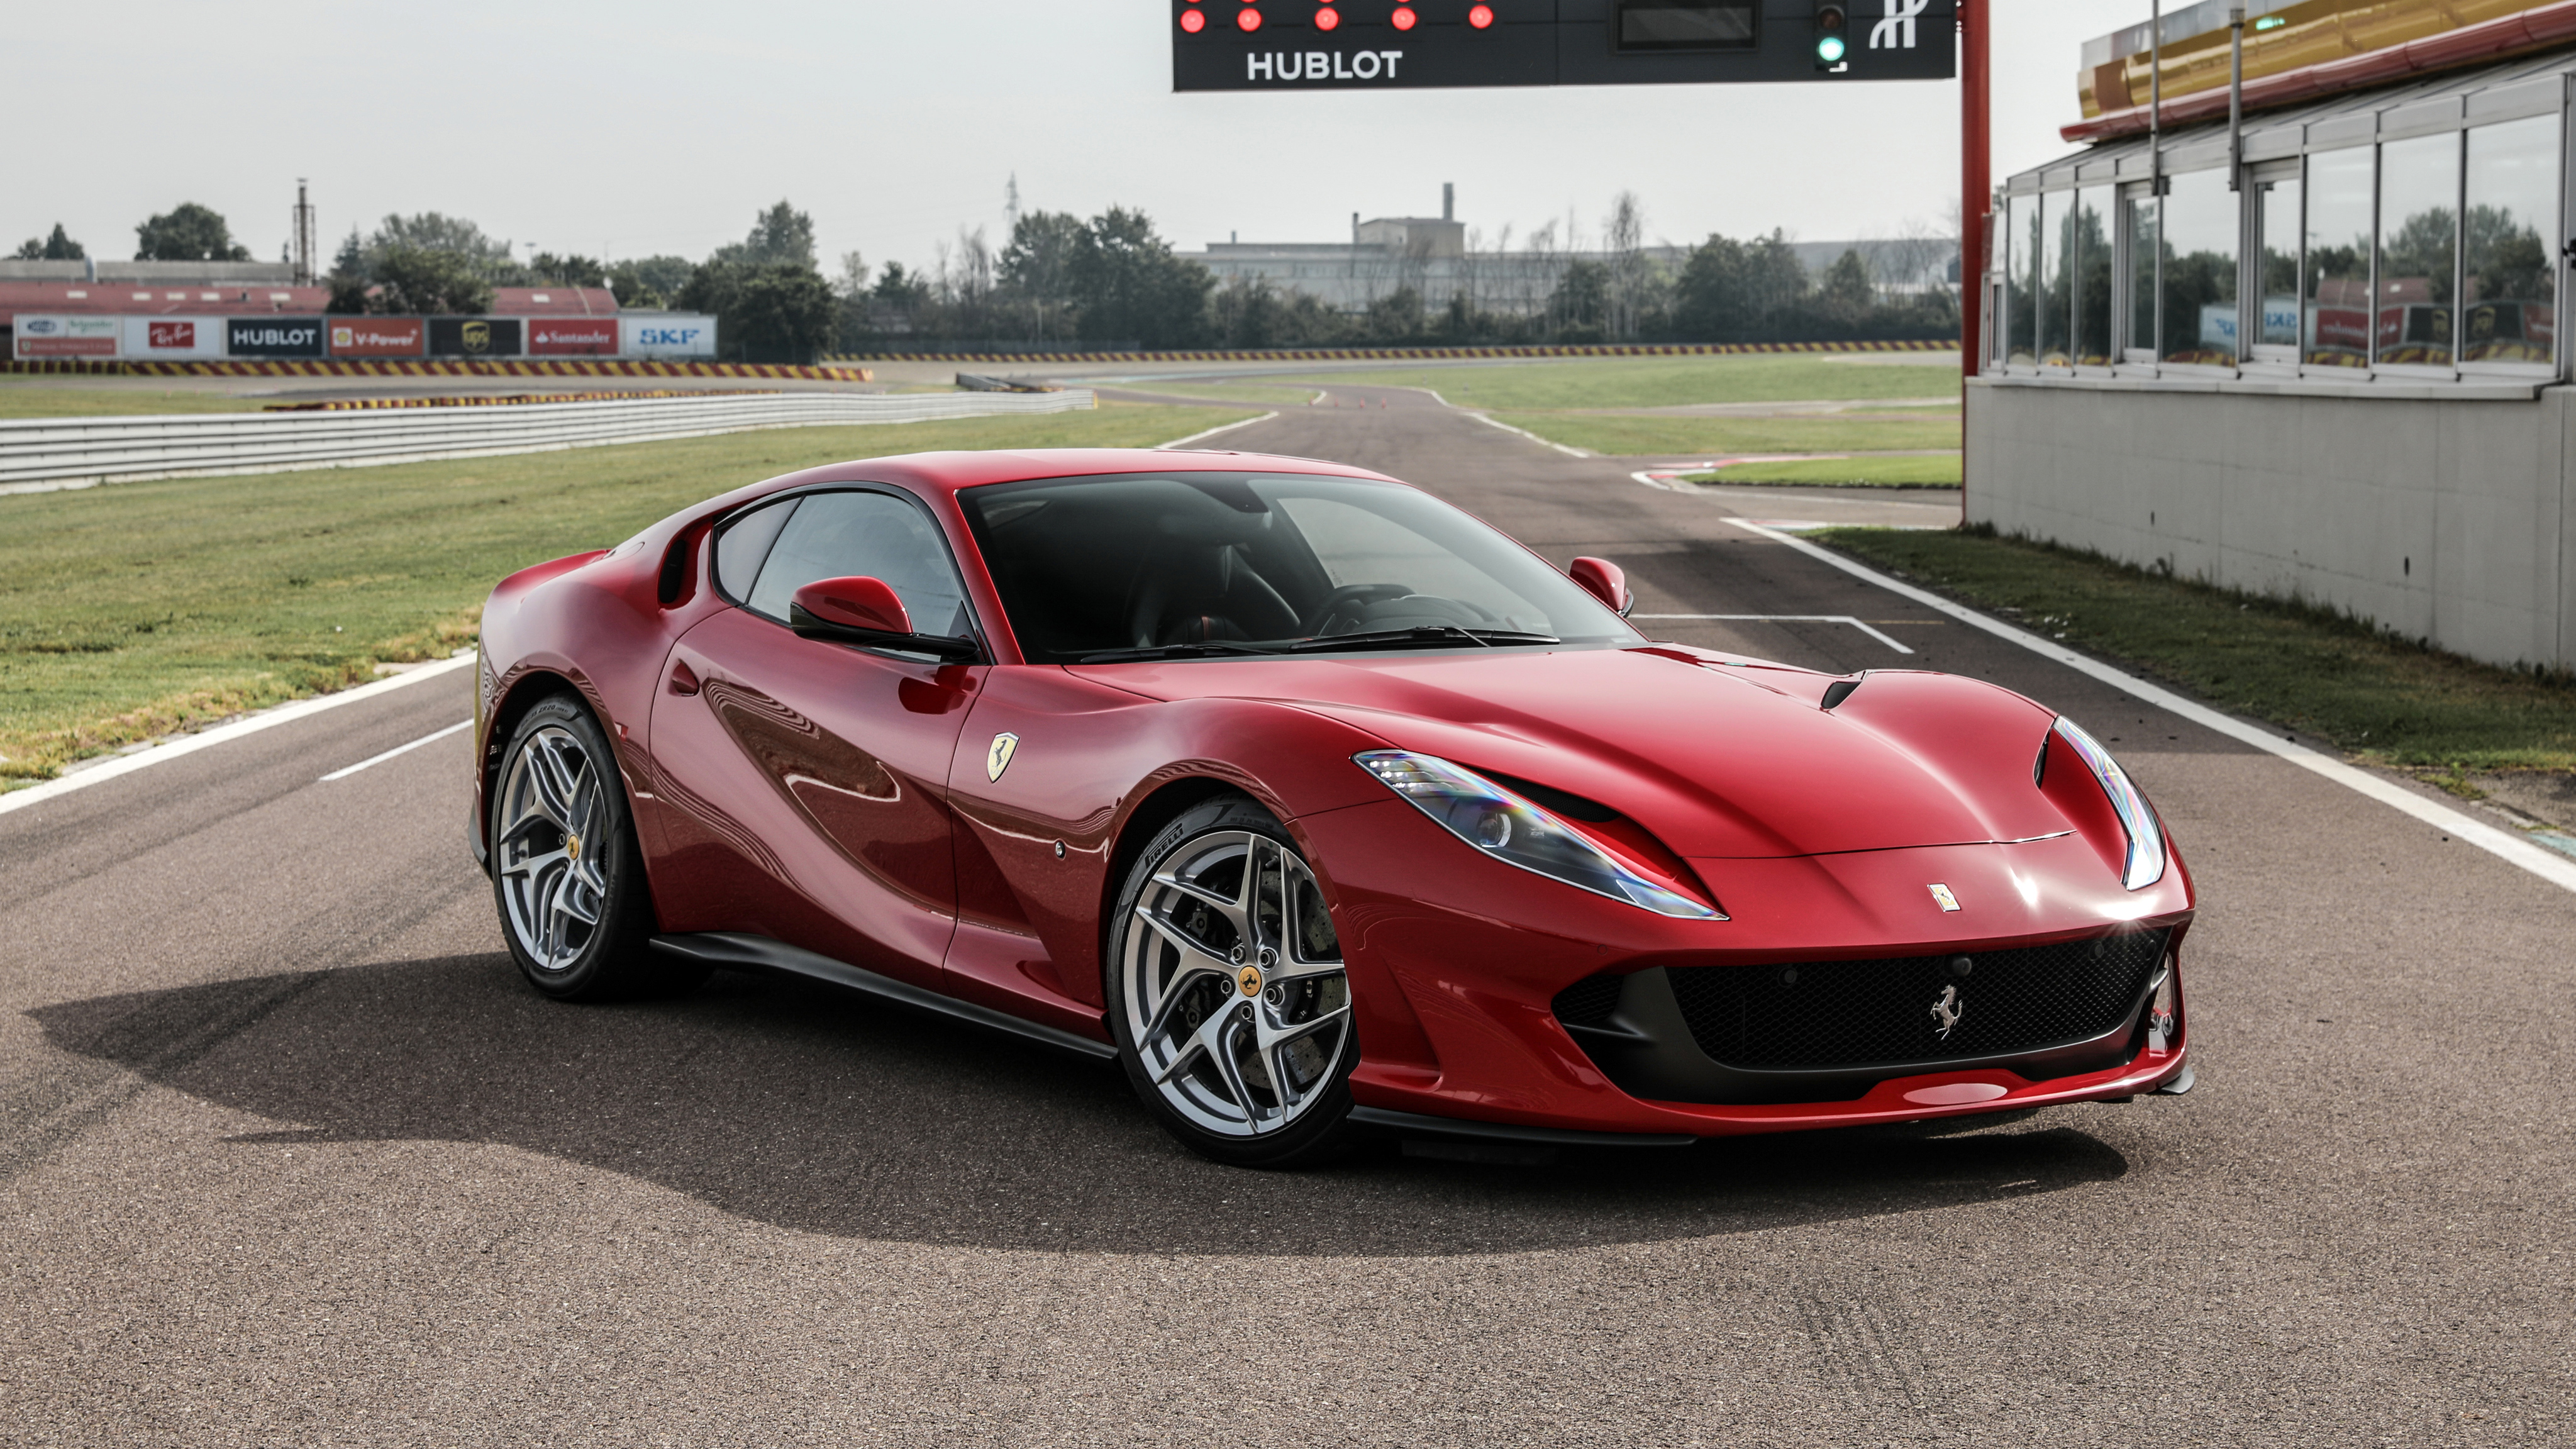 Ferrari 812 Superfast 2017 4k Wallpaper Hd Car Wallpapers Id 9004